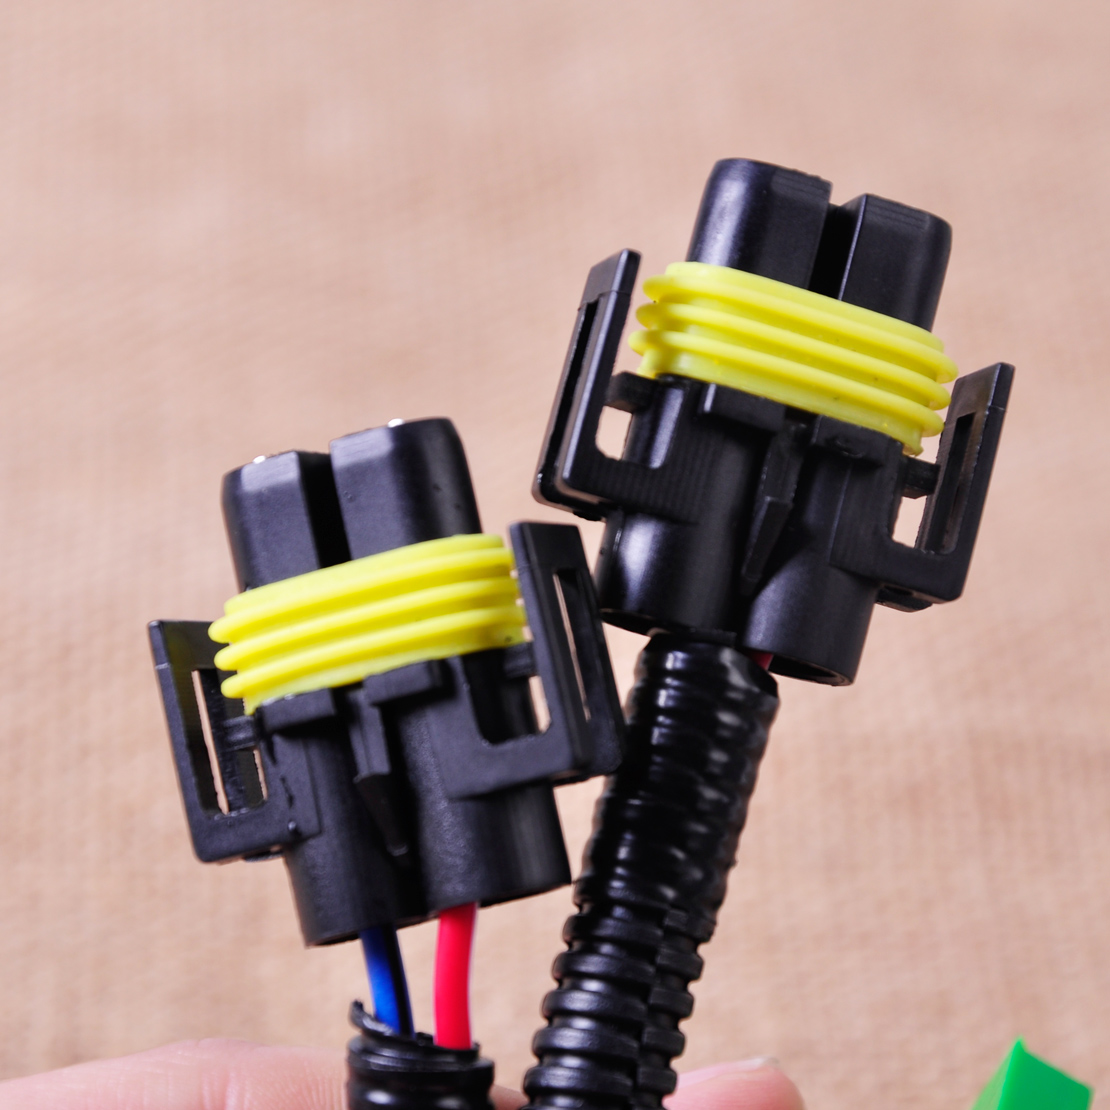 Wiring Harness Sockets Connector Switch For H11 Fog Light Lamp Ford Focus Ebay Photo Show